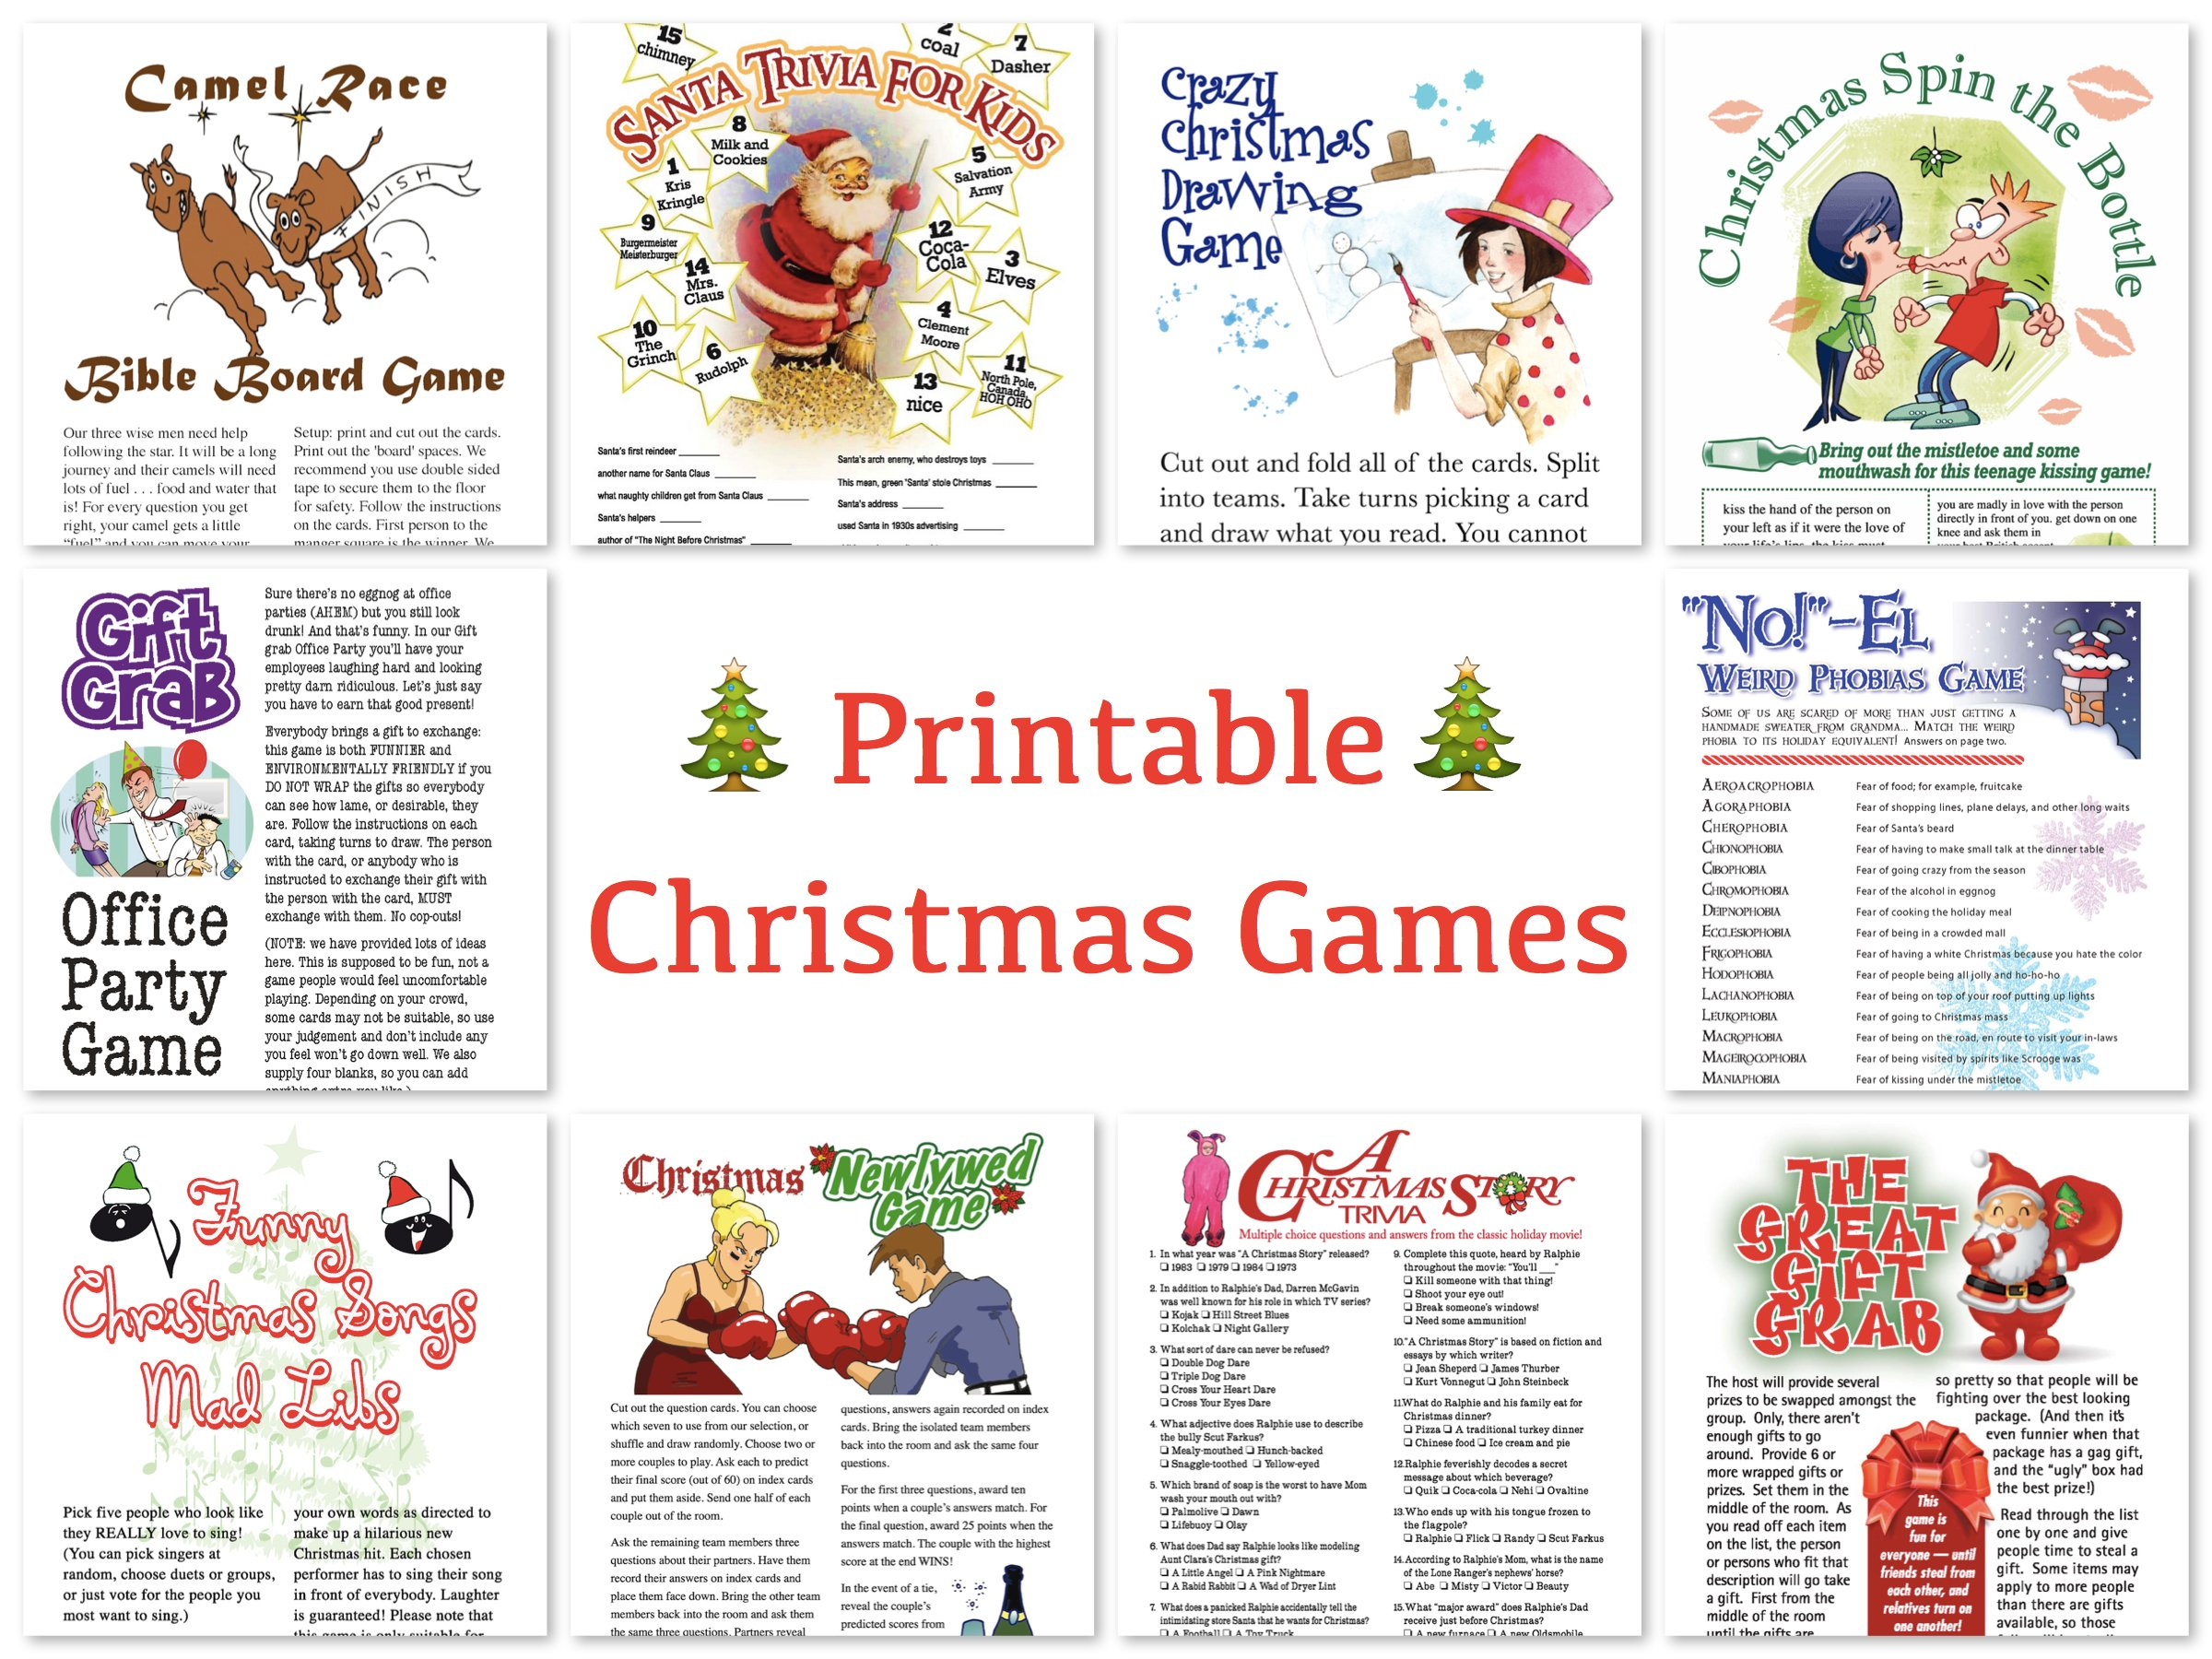 printable christmas games printable holiday games - Christmas Decoration Games